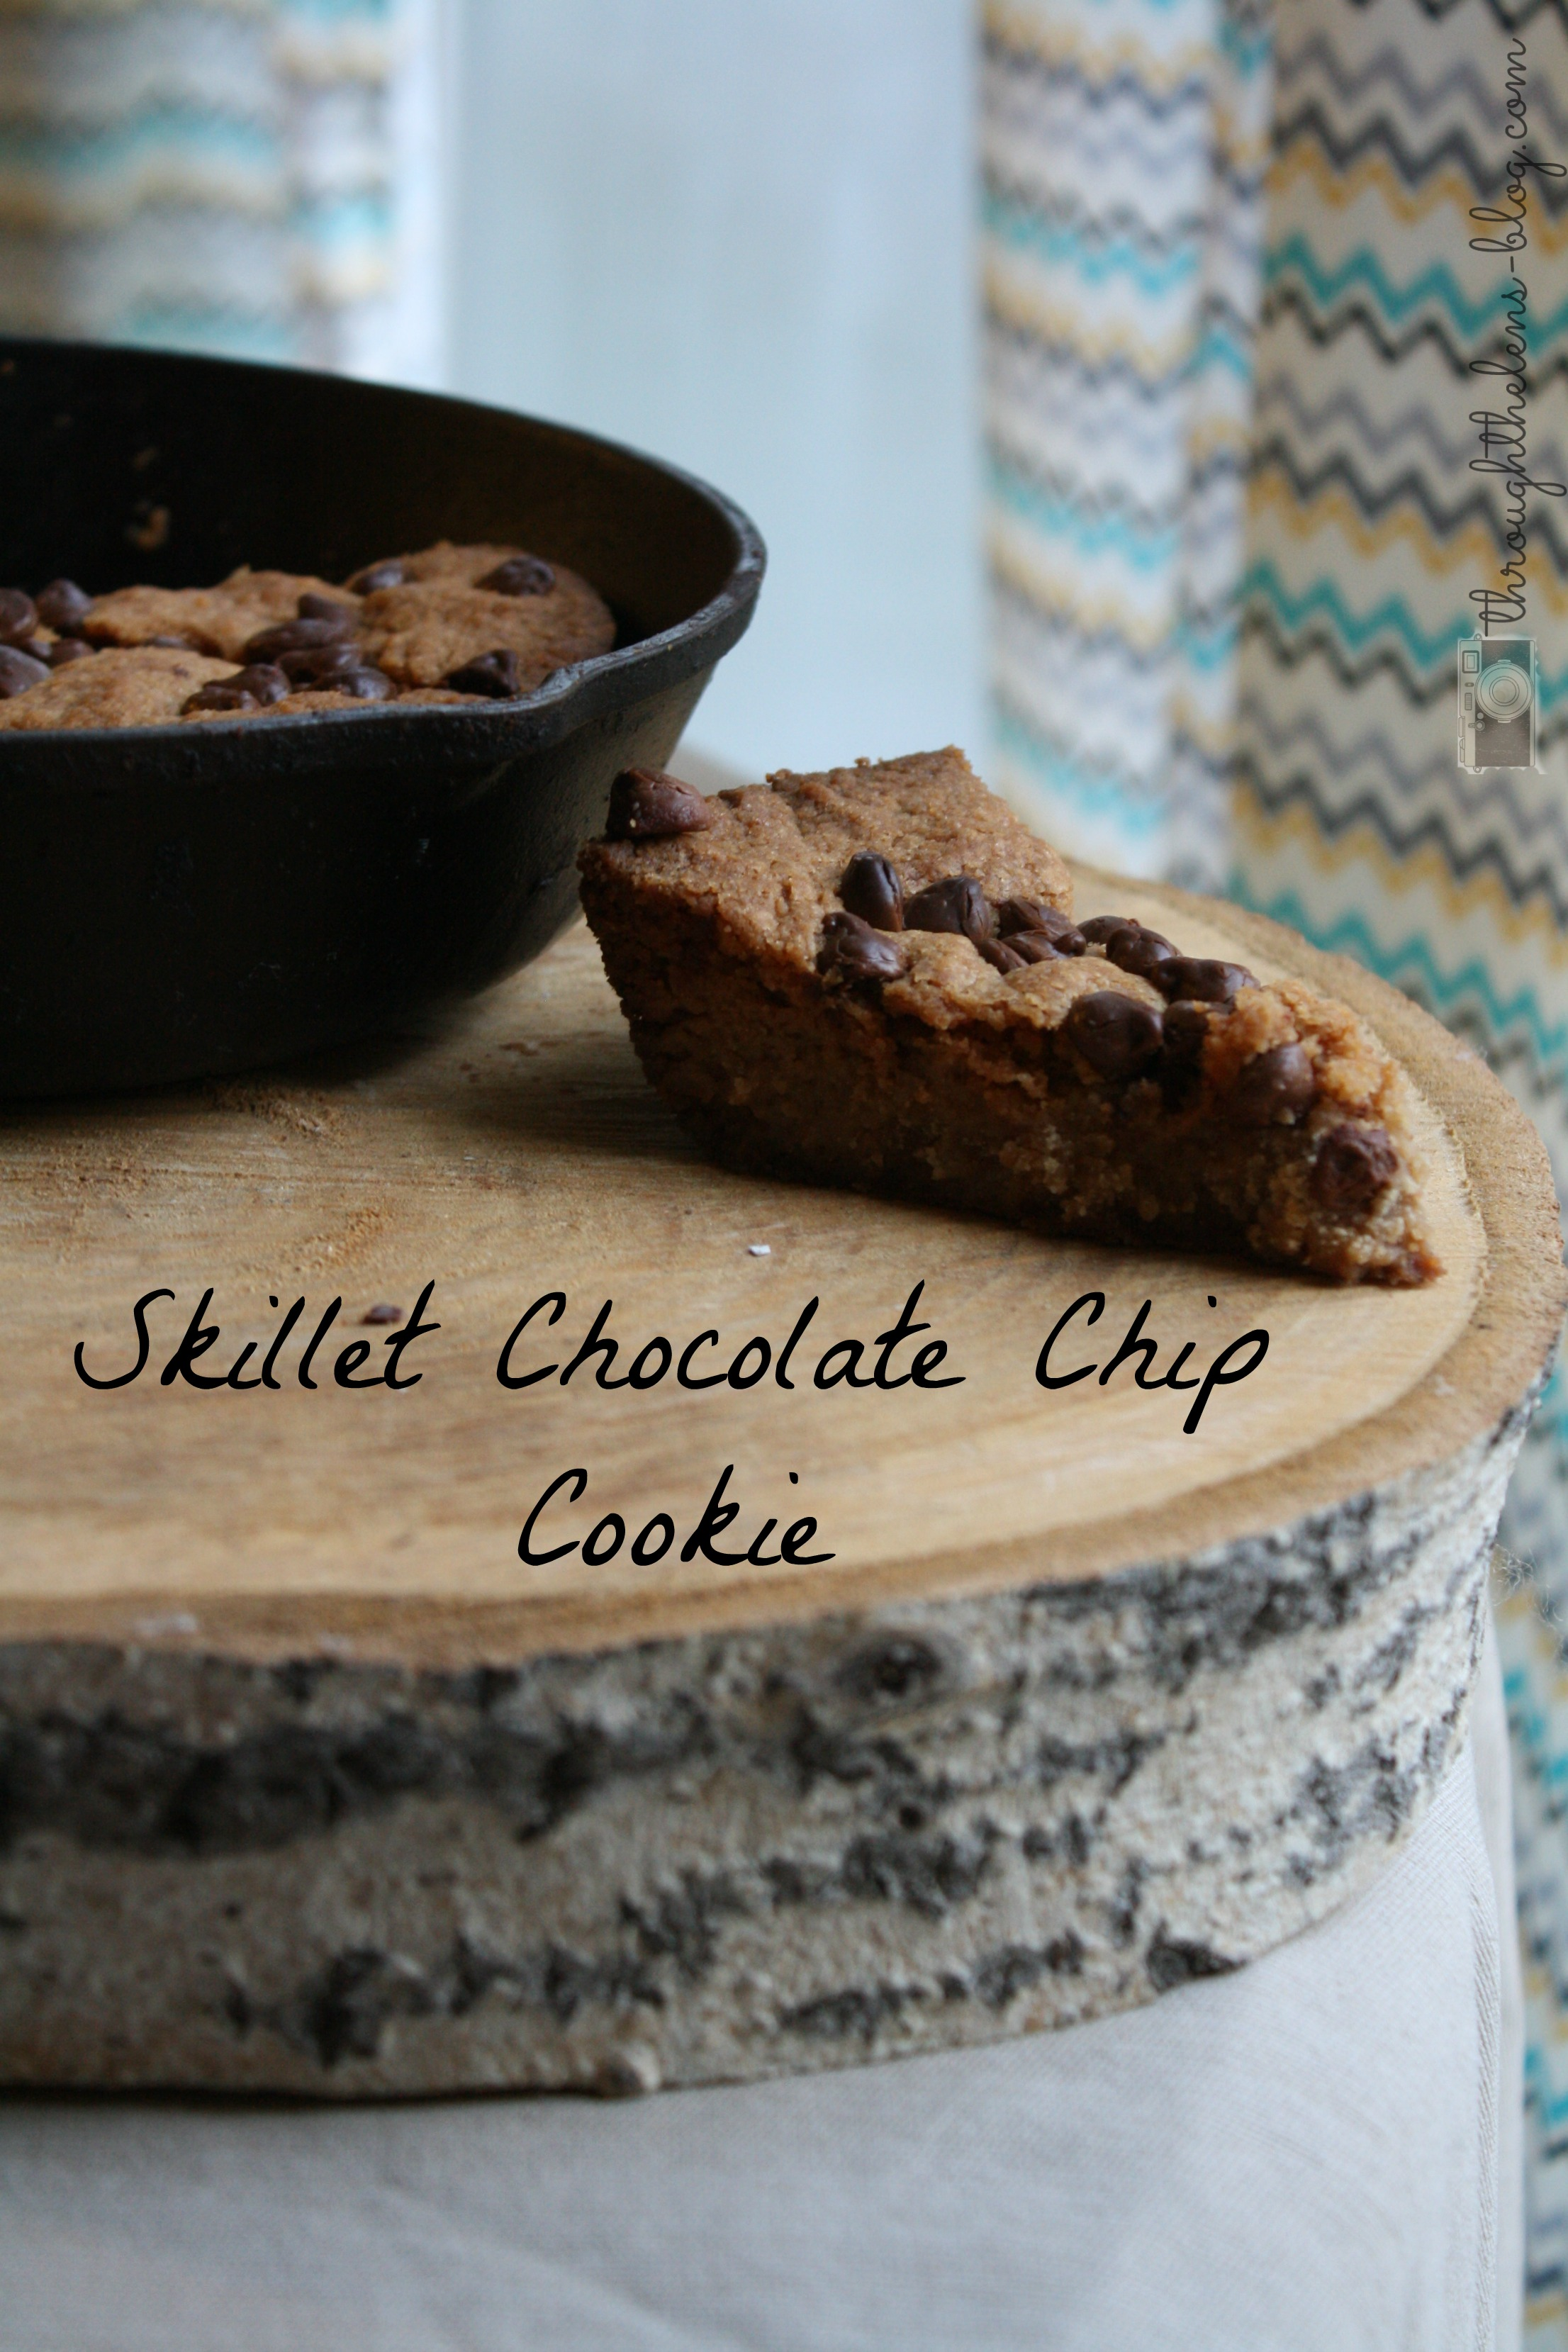 Skillet Chocolate Chip Cookie | Through the Lens